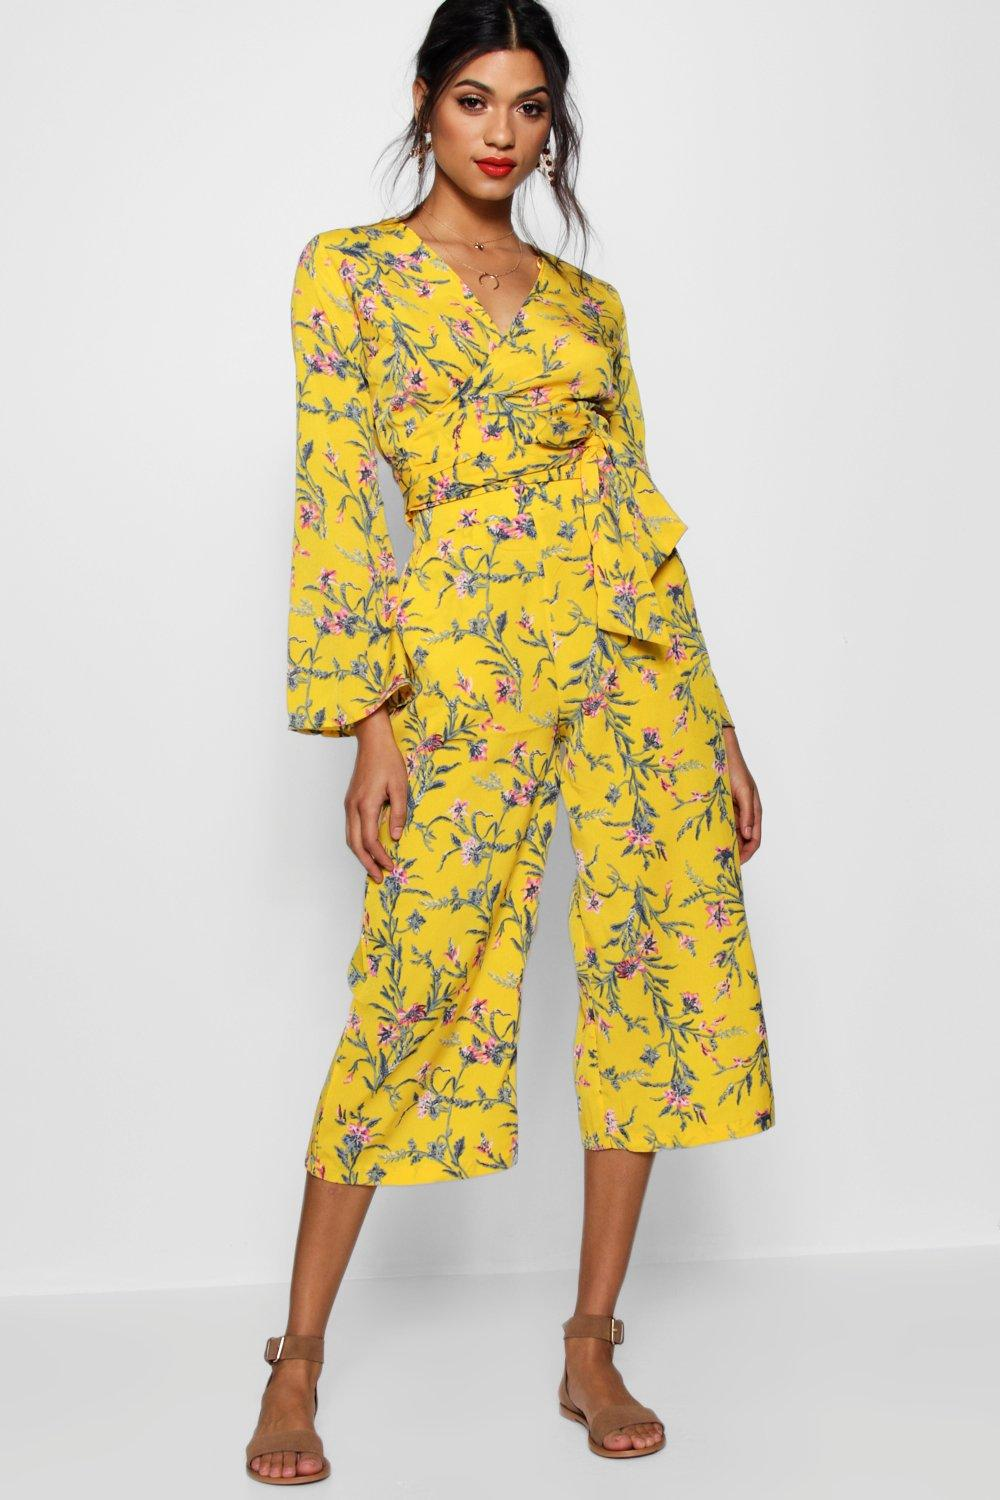 d8c7d17a92 Lyst - Boohoo Wendy Floral Tie Front Top And Culotte Co-ord in Yellow